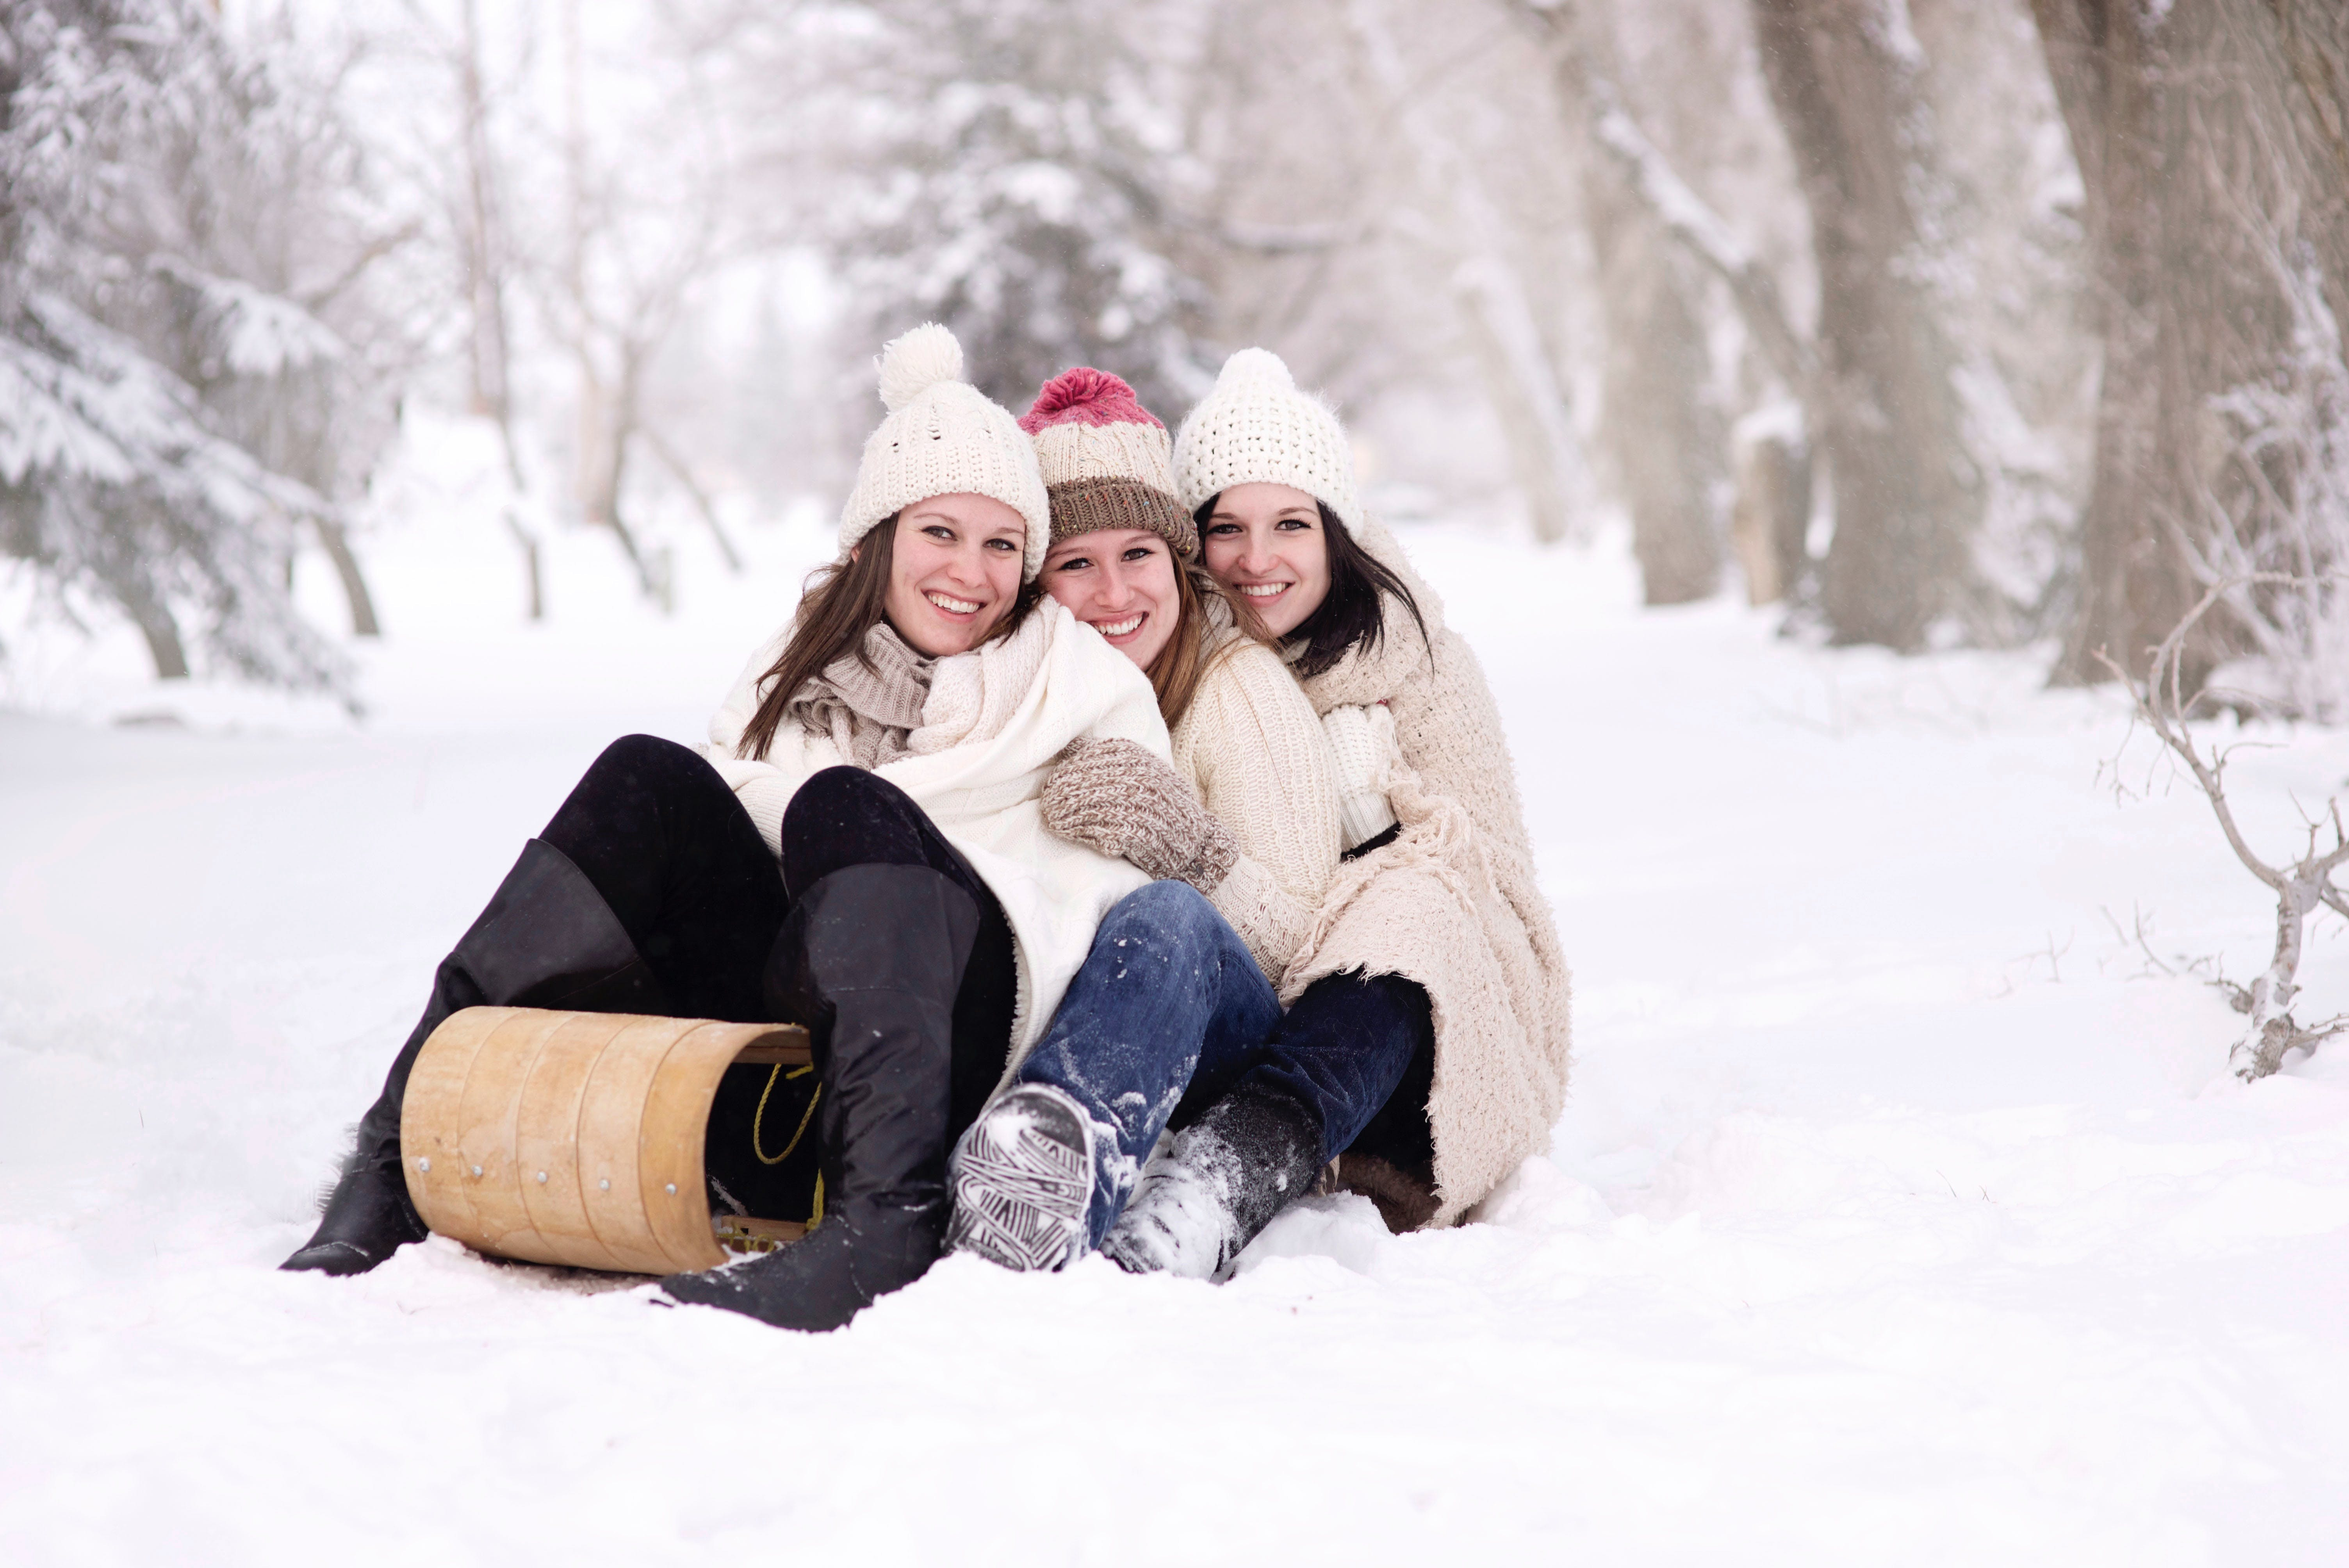 Three Women Sitting on Snow Covered Ground during Day